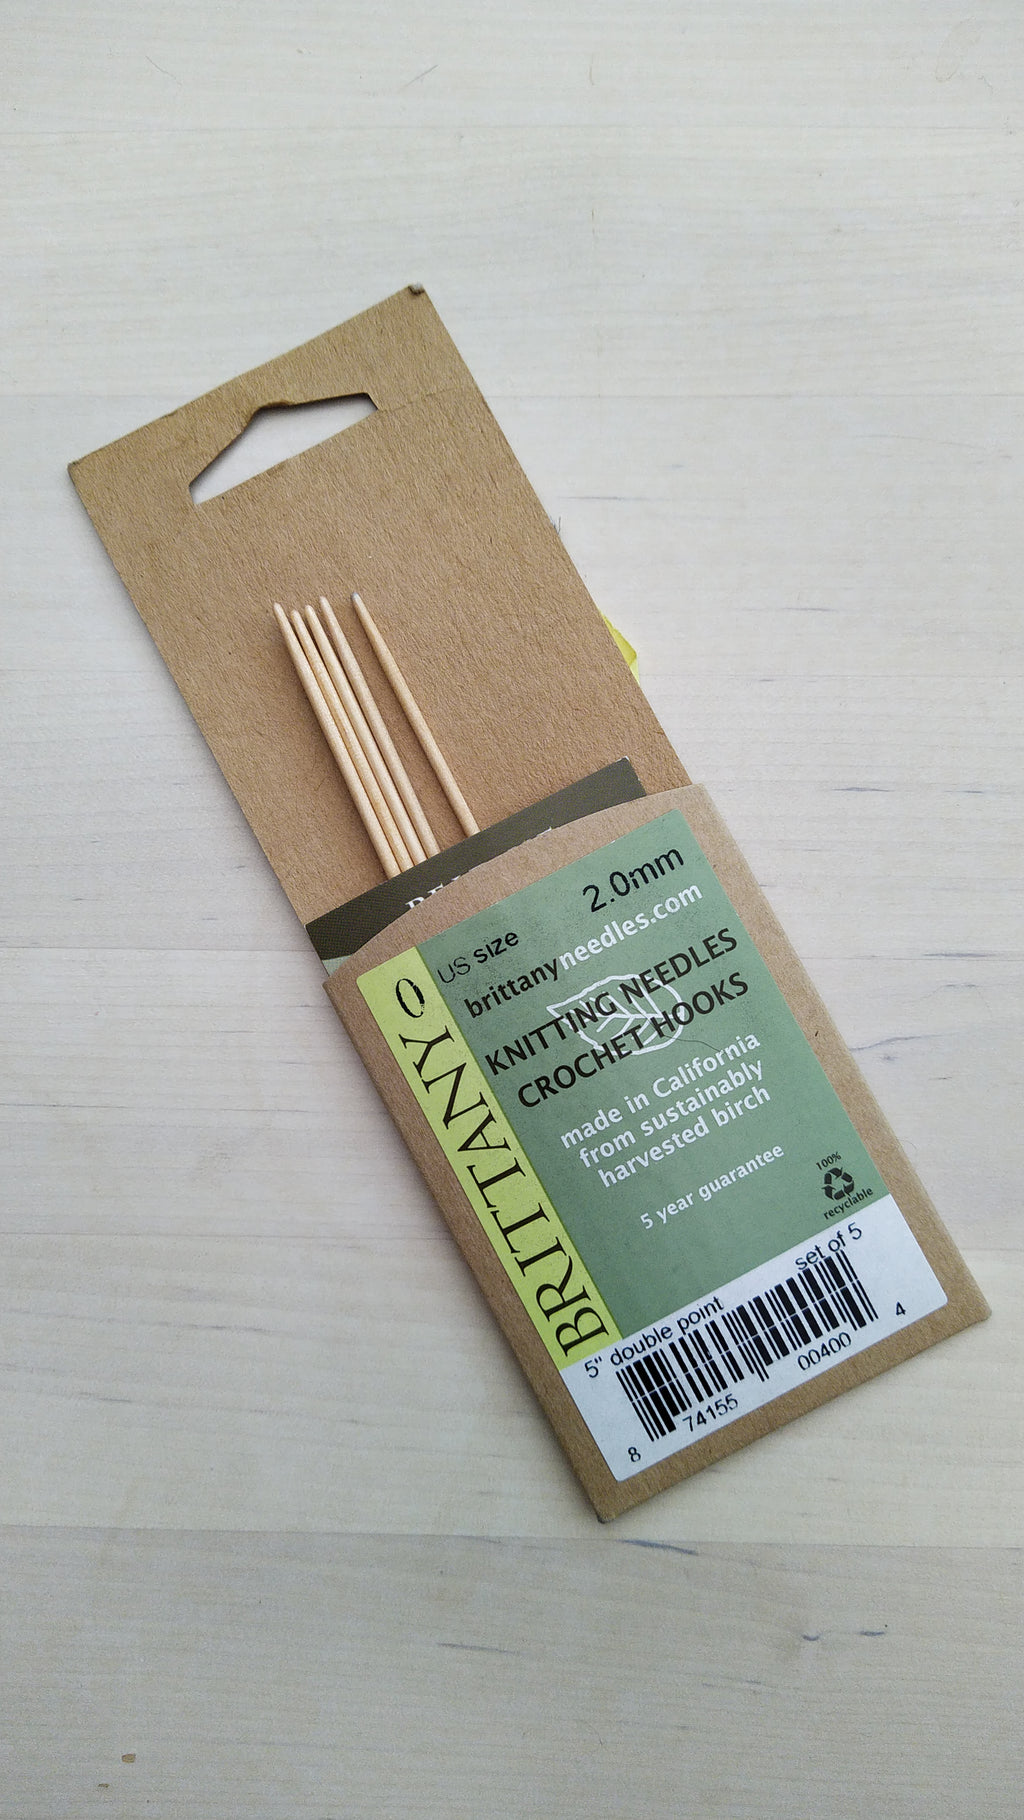 Brittany Double Pointes Needles 2.00mm